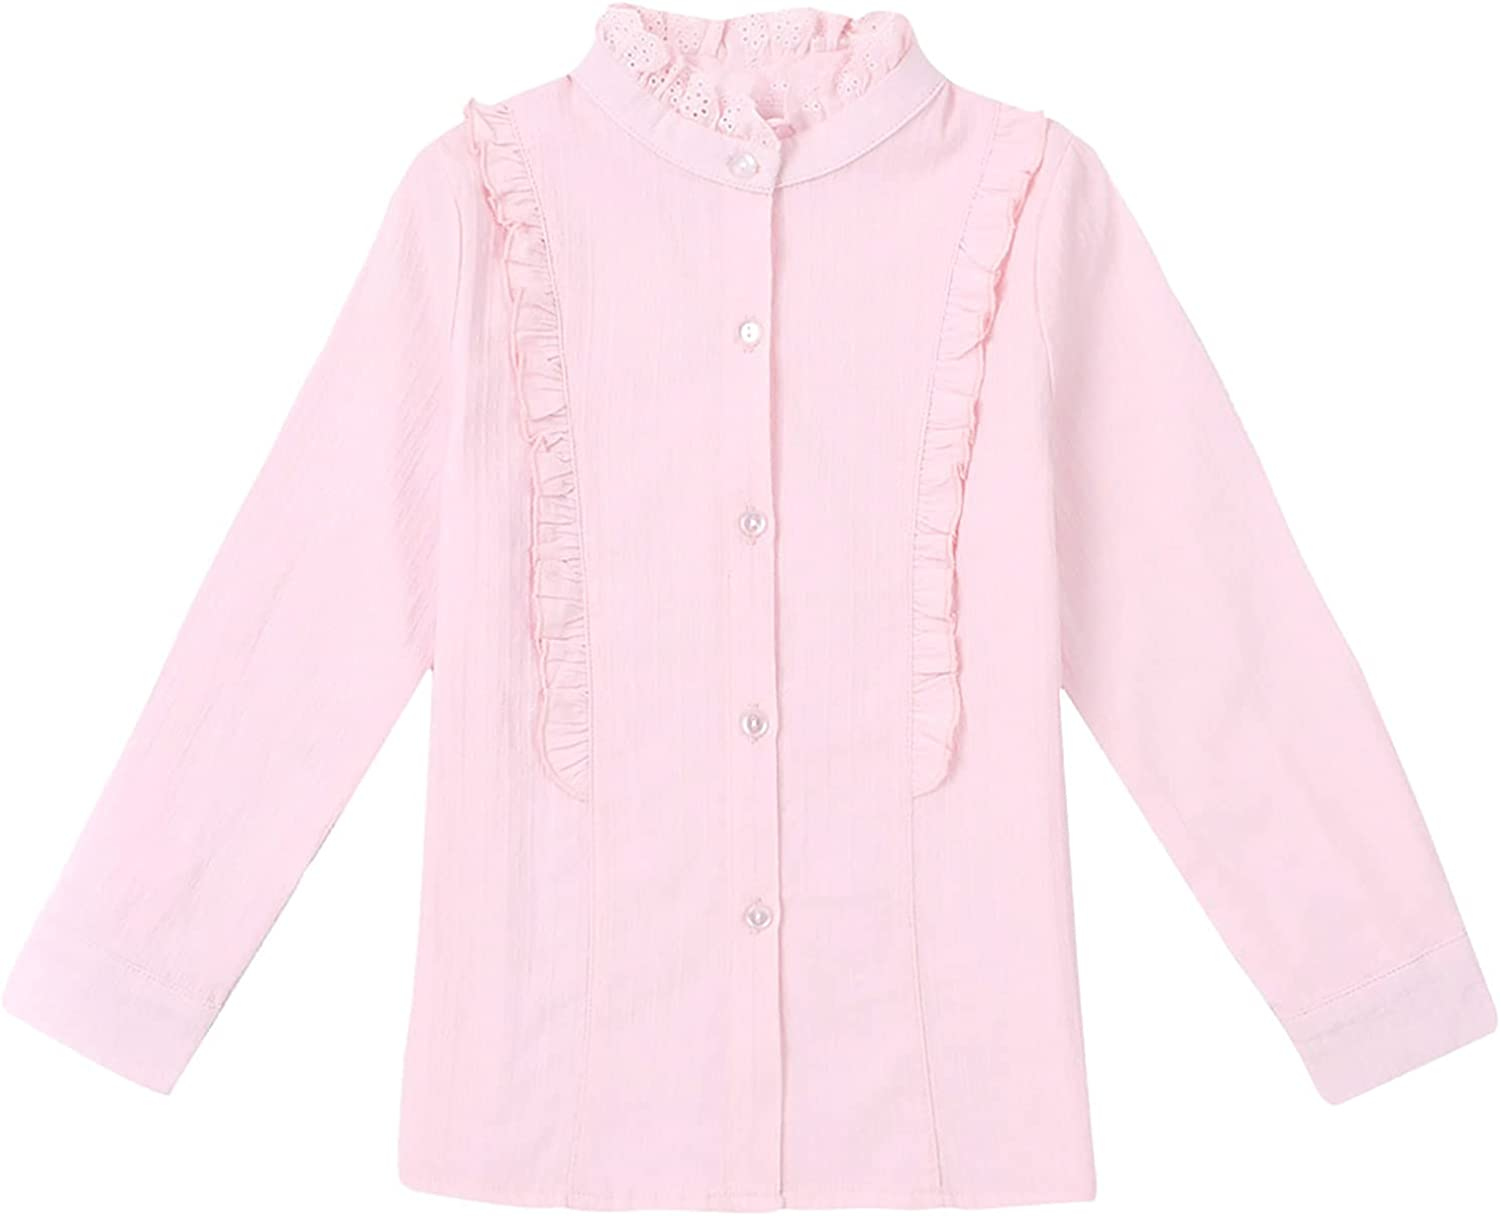 Freebily Little Girls Solid Color Button Down Blouse Ruffle Long Sleeve Loose Fit Shirt Tops Casual Wear